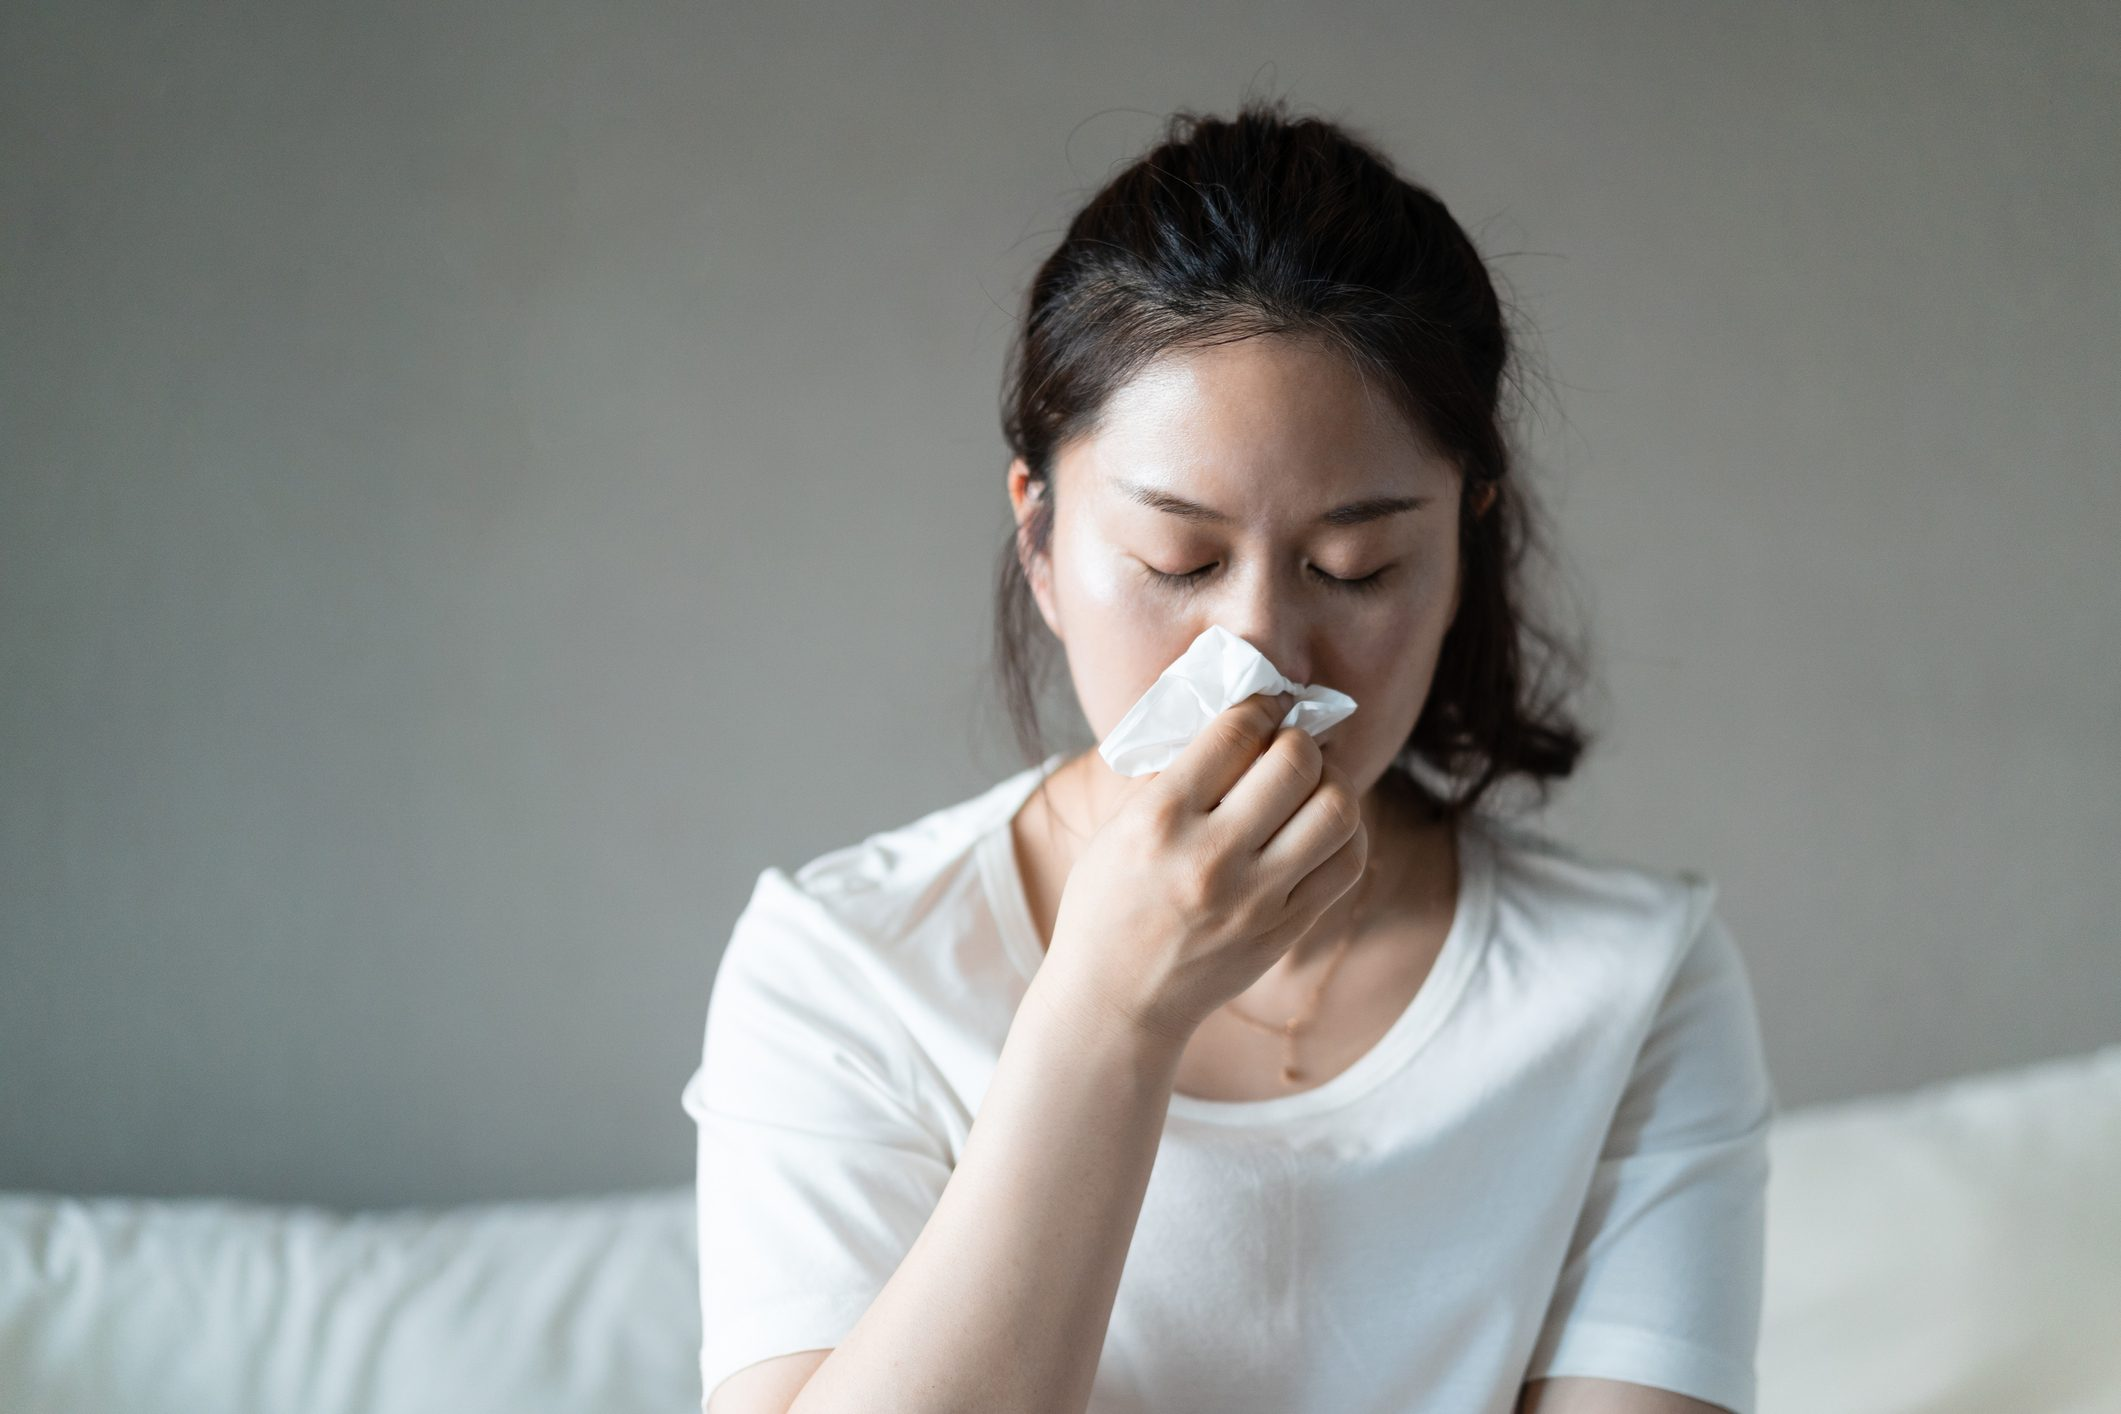 woman using a tissue to sneeze or blow her nose